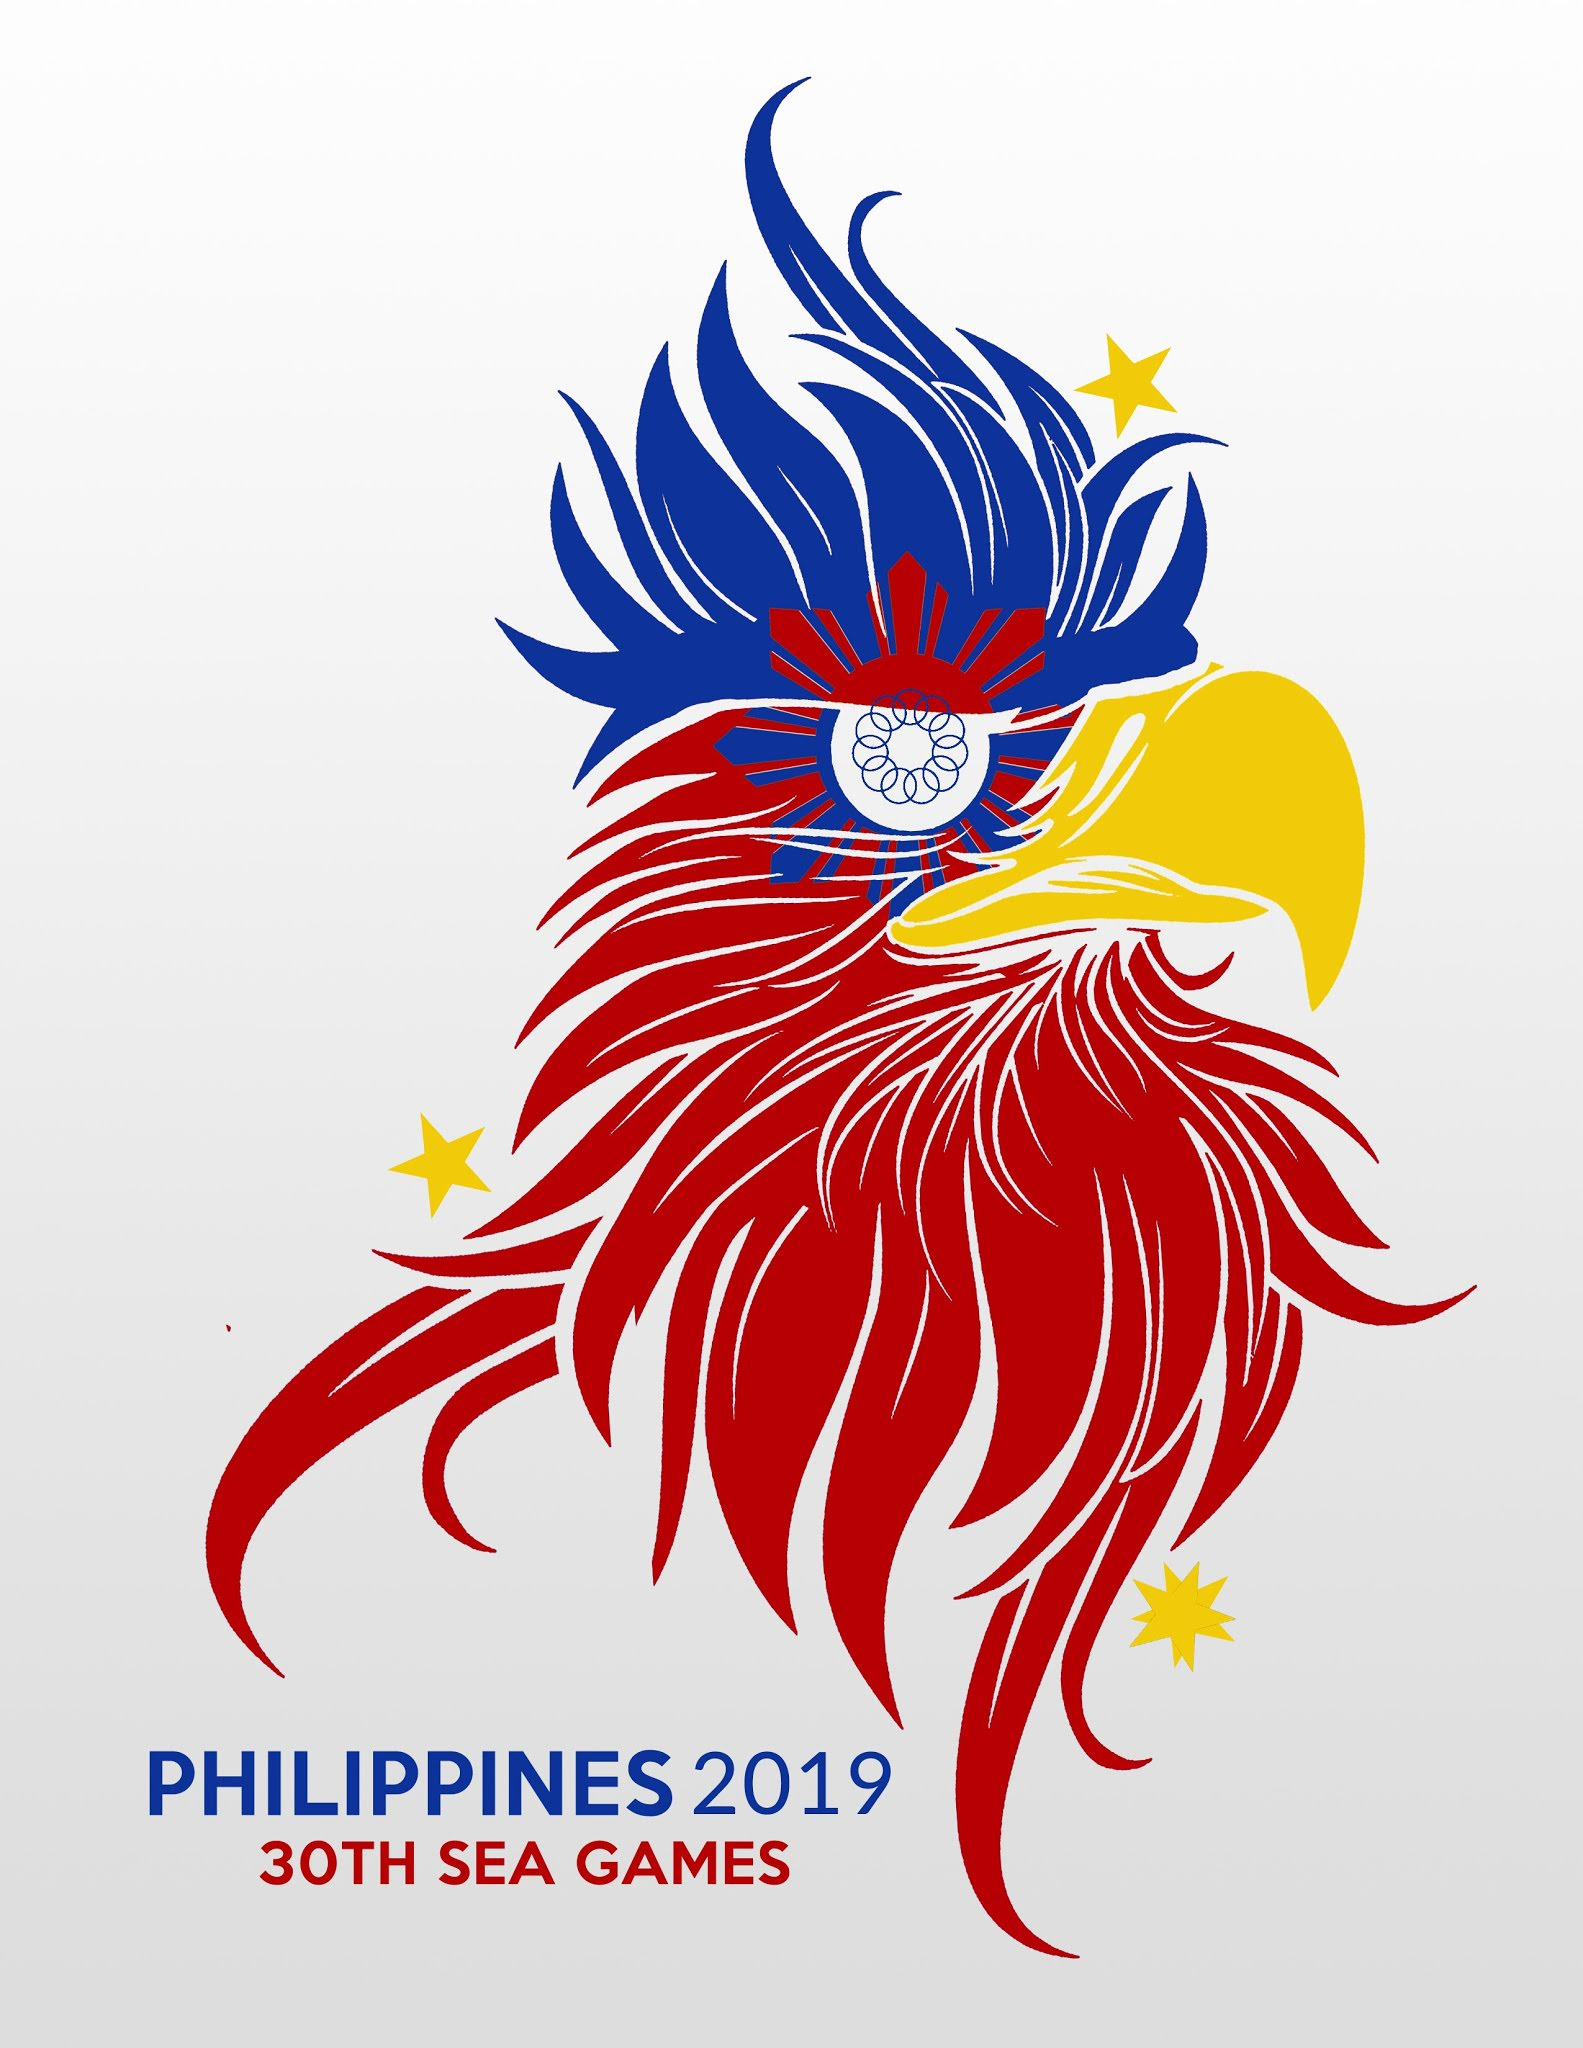 philippine eagle shines as netizens redesign 2019 sea games logo